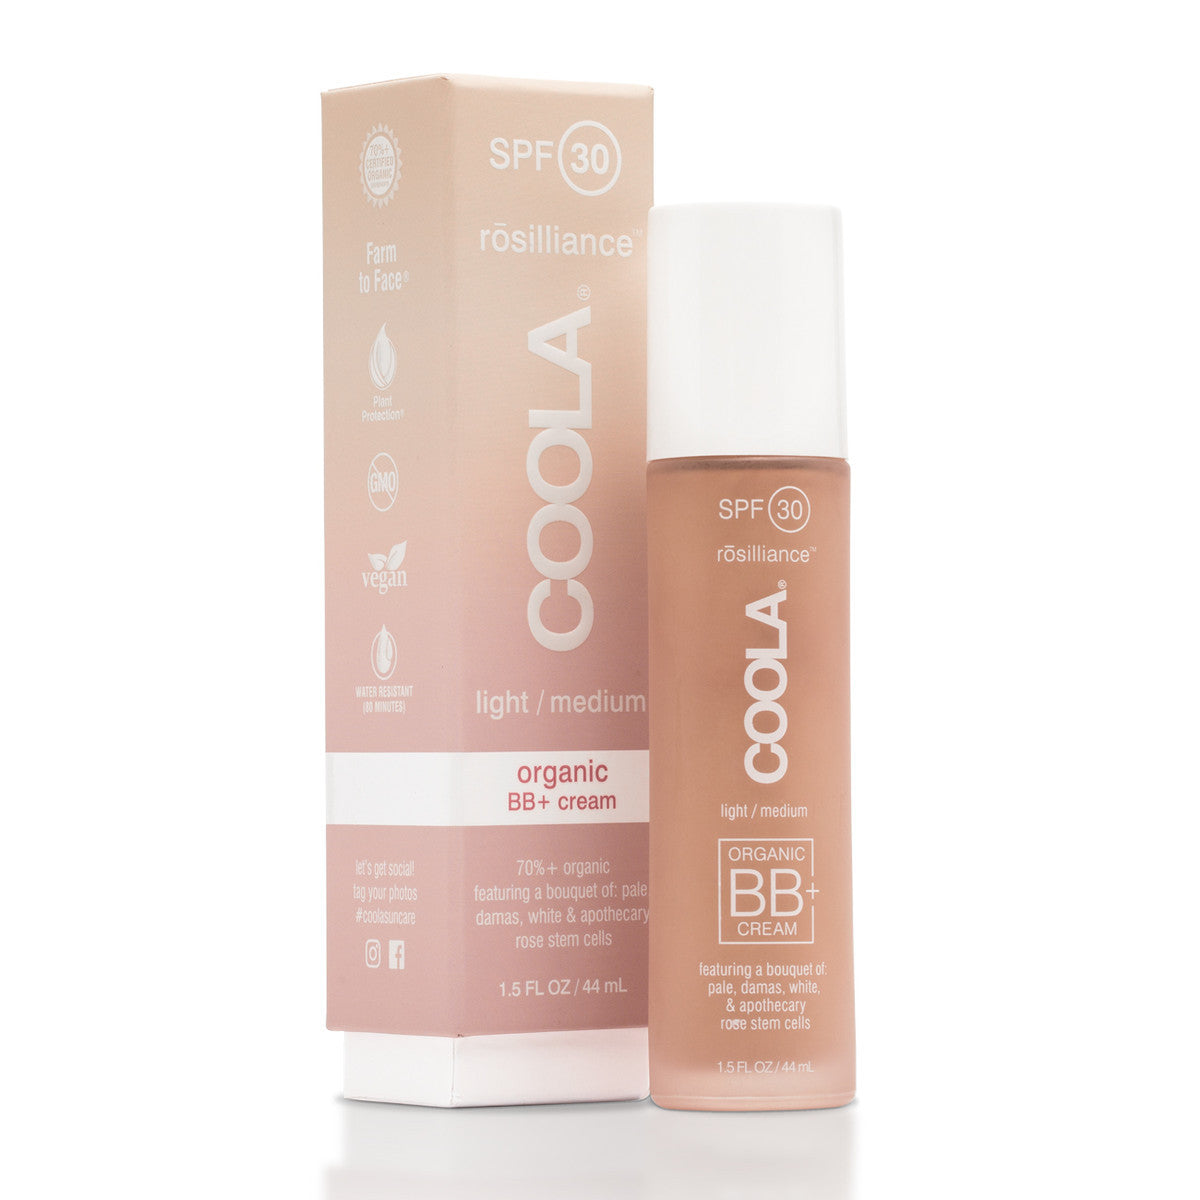 coola - rosilliance organic bb cream spf 30[product_type ]coola suncare - Kiss and Makeup